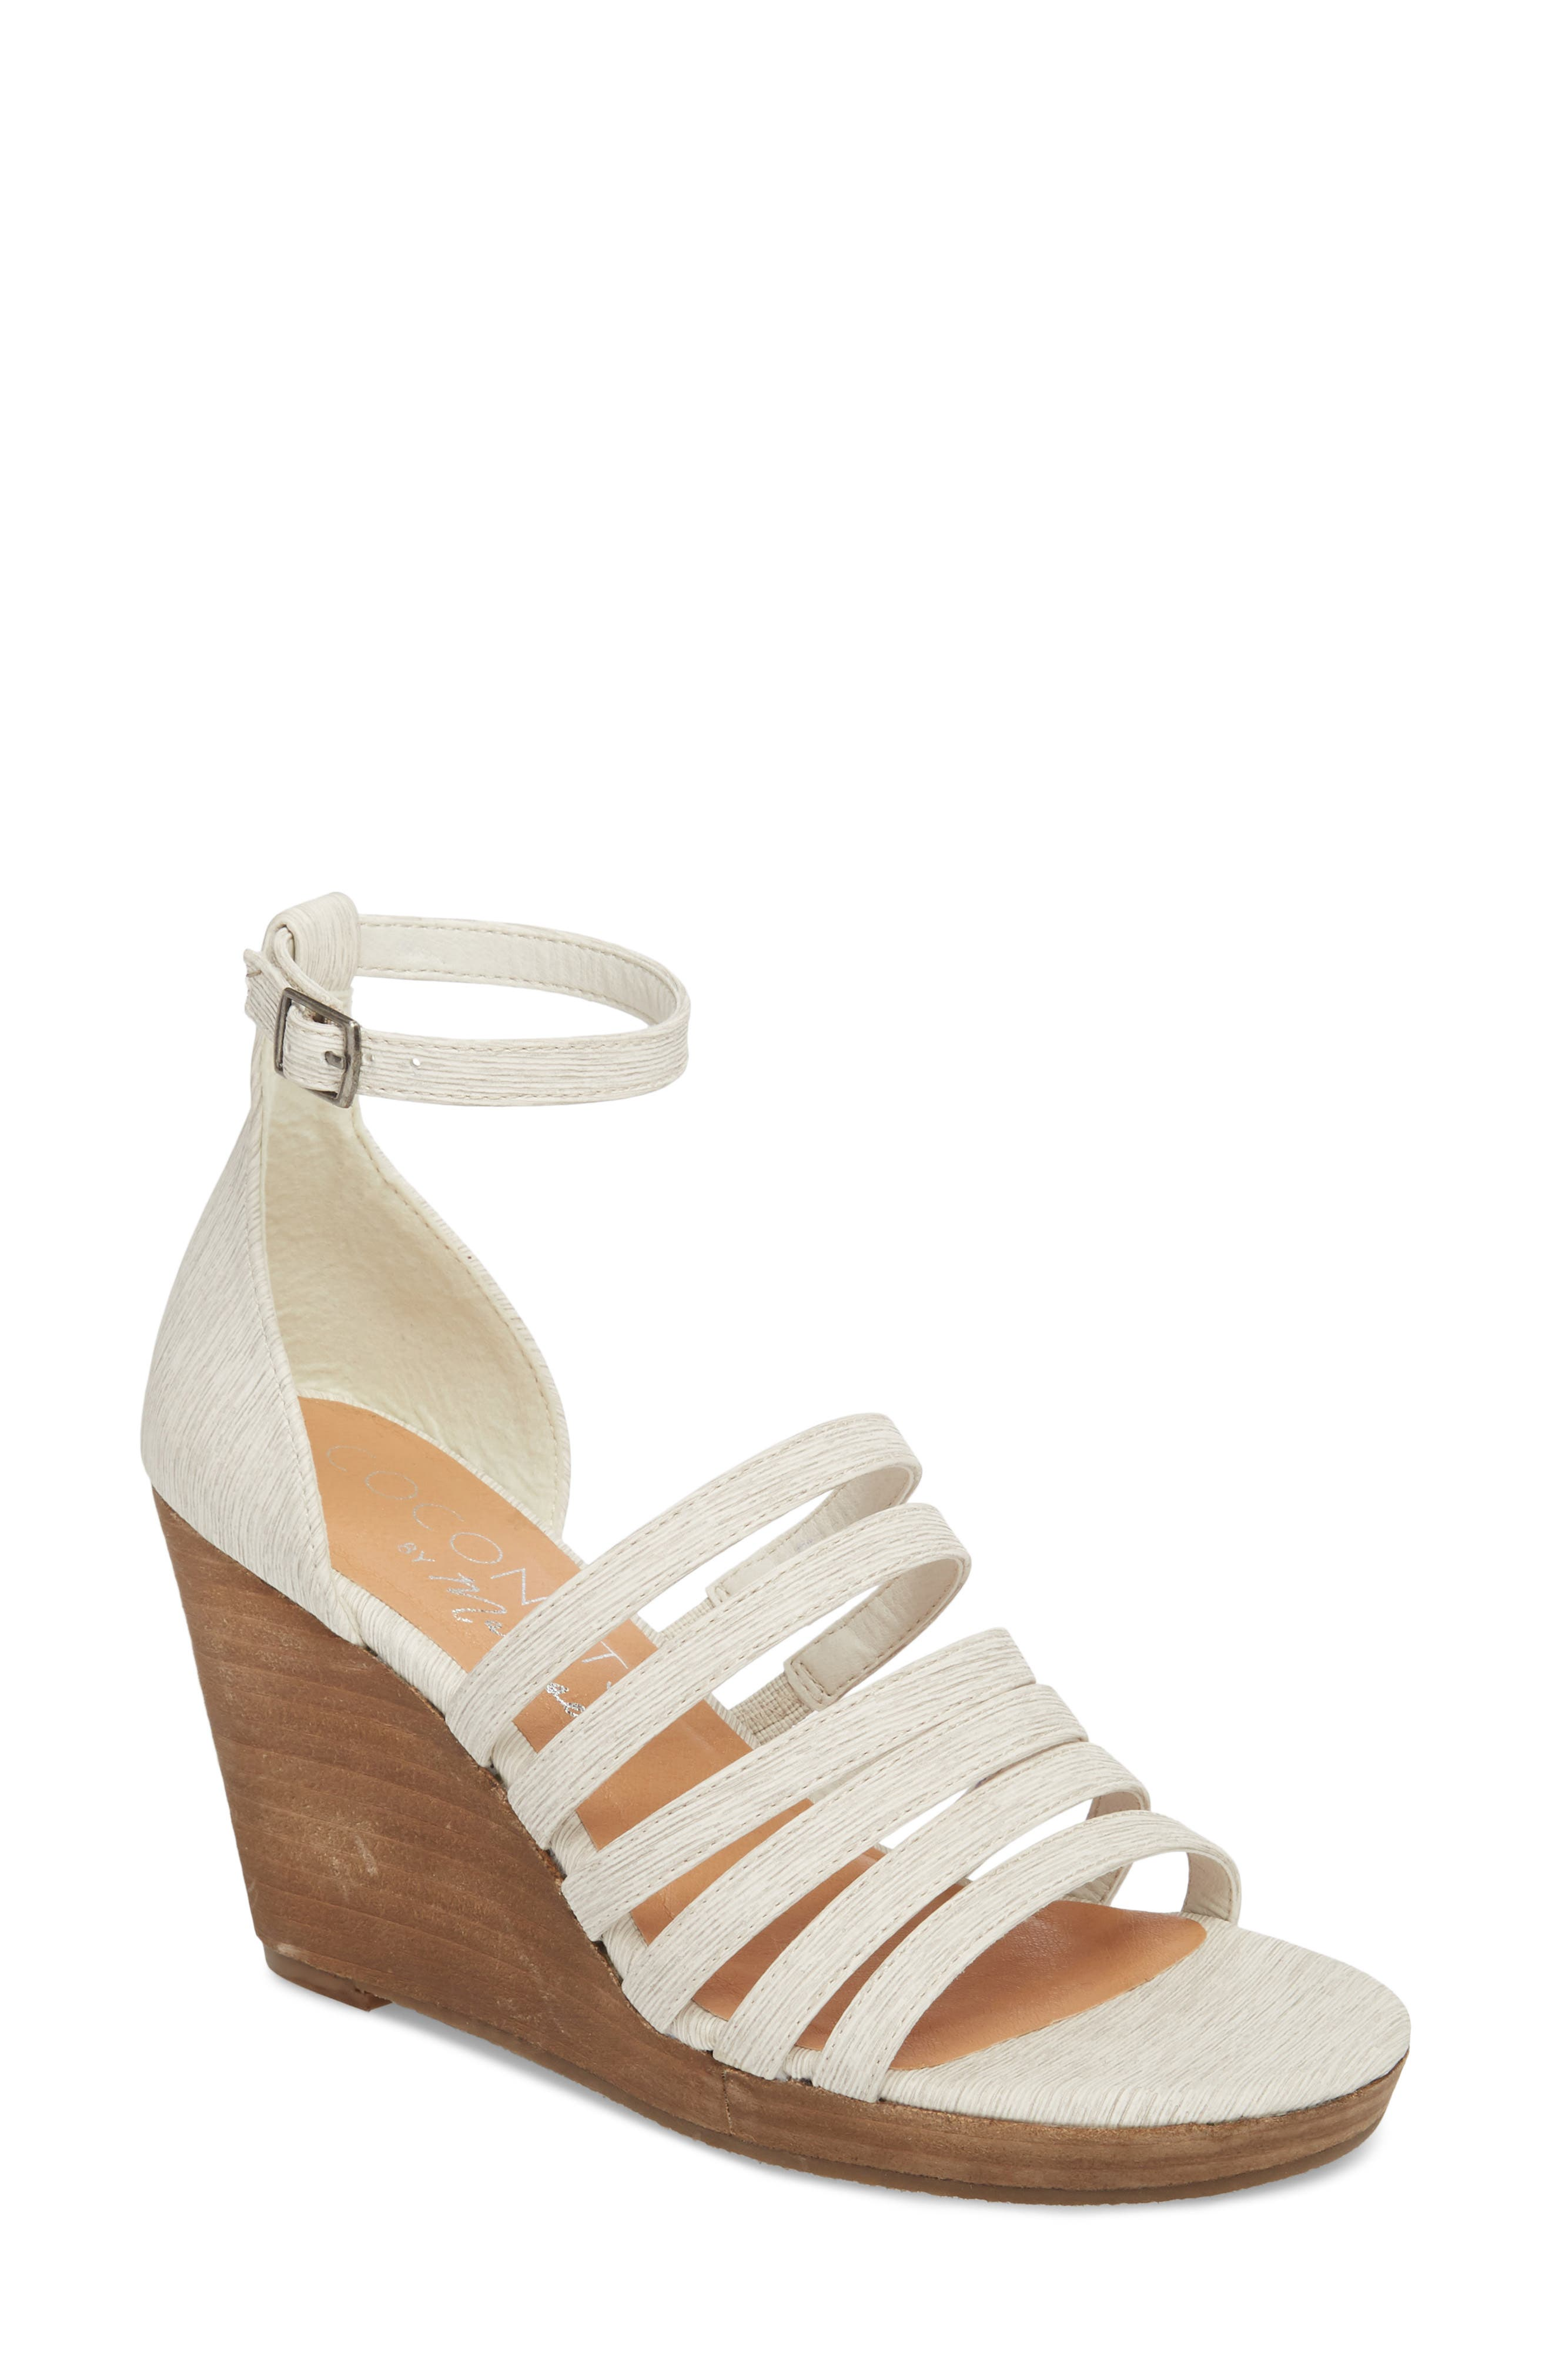 Coconuts By Matisse Kiera Wedge Sandal, White